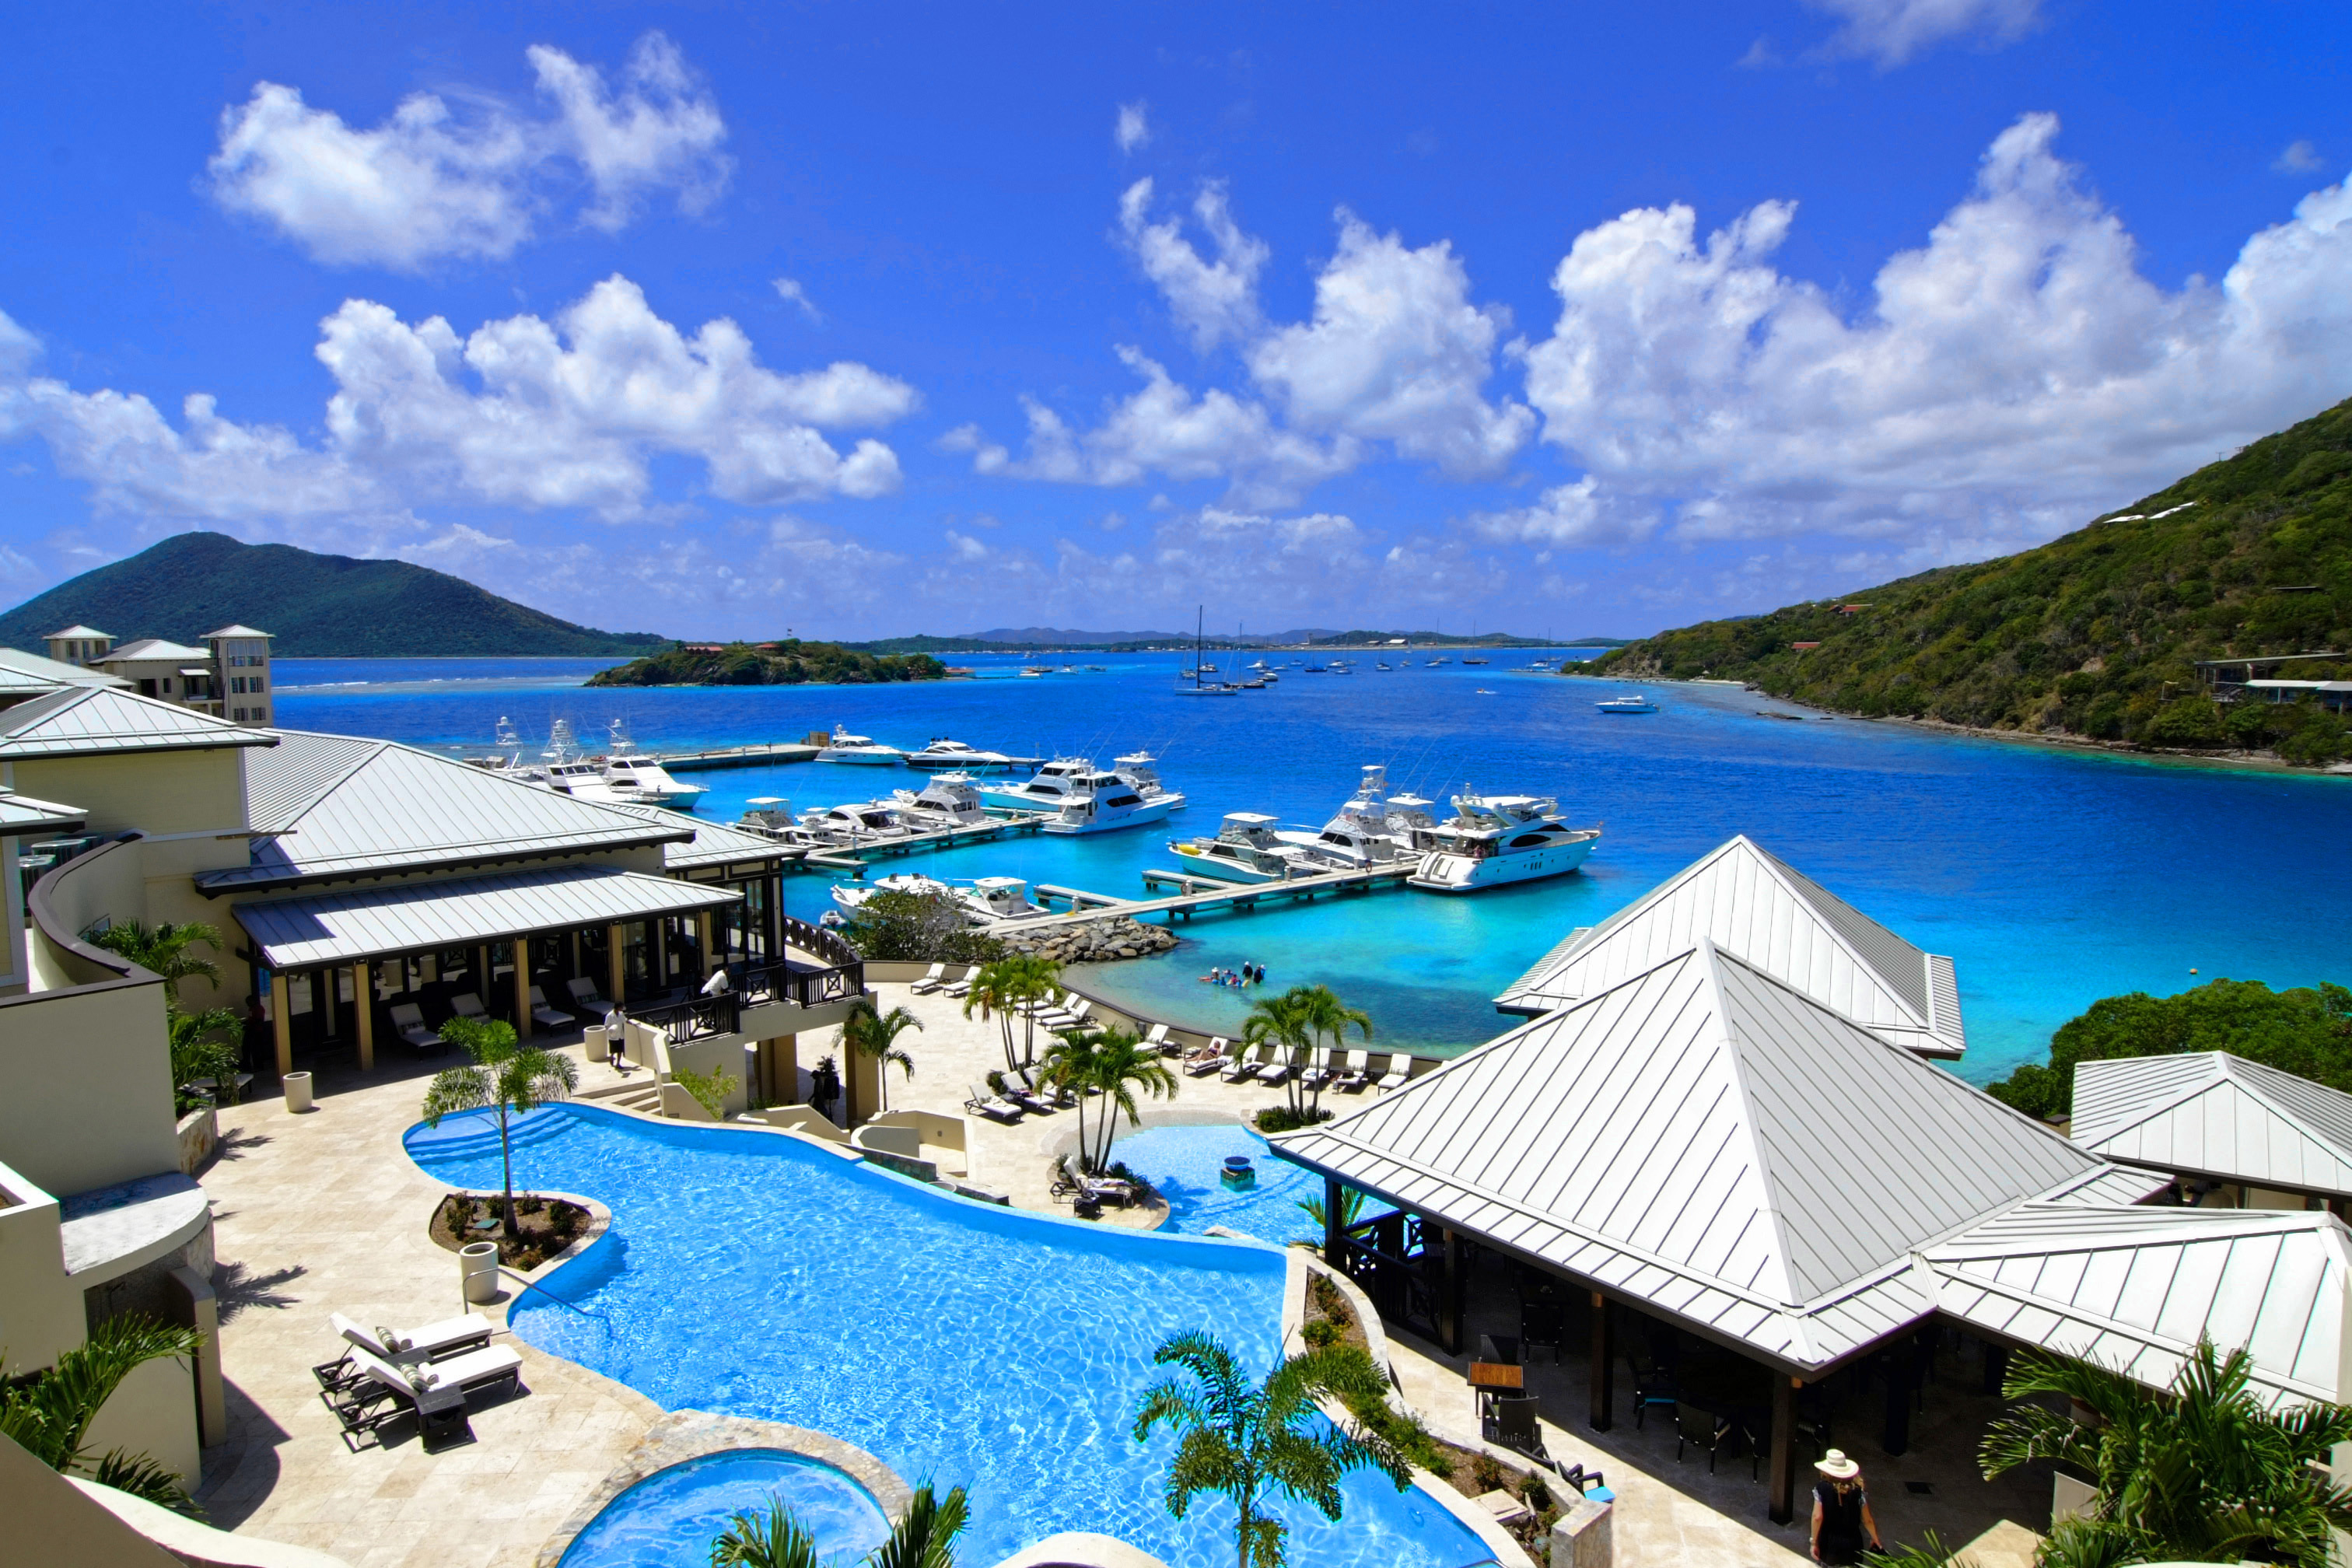 Hotels With Pools Ebex